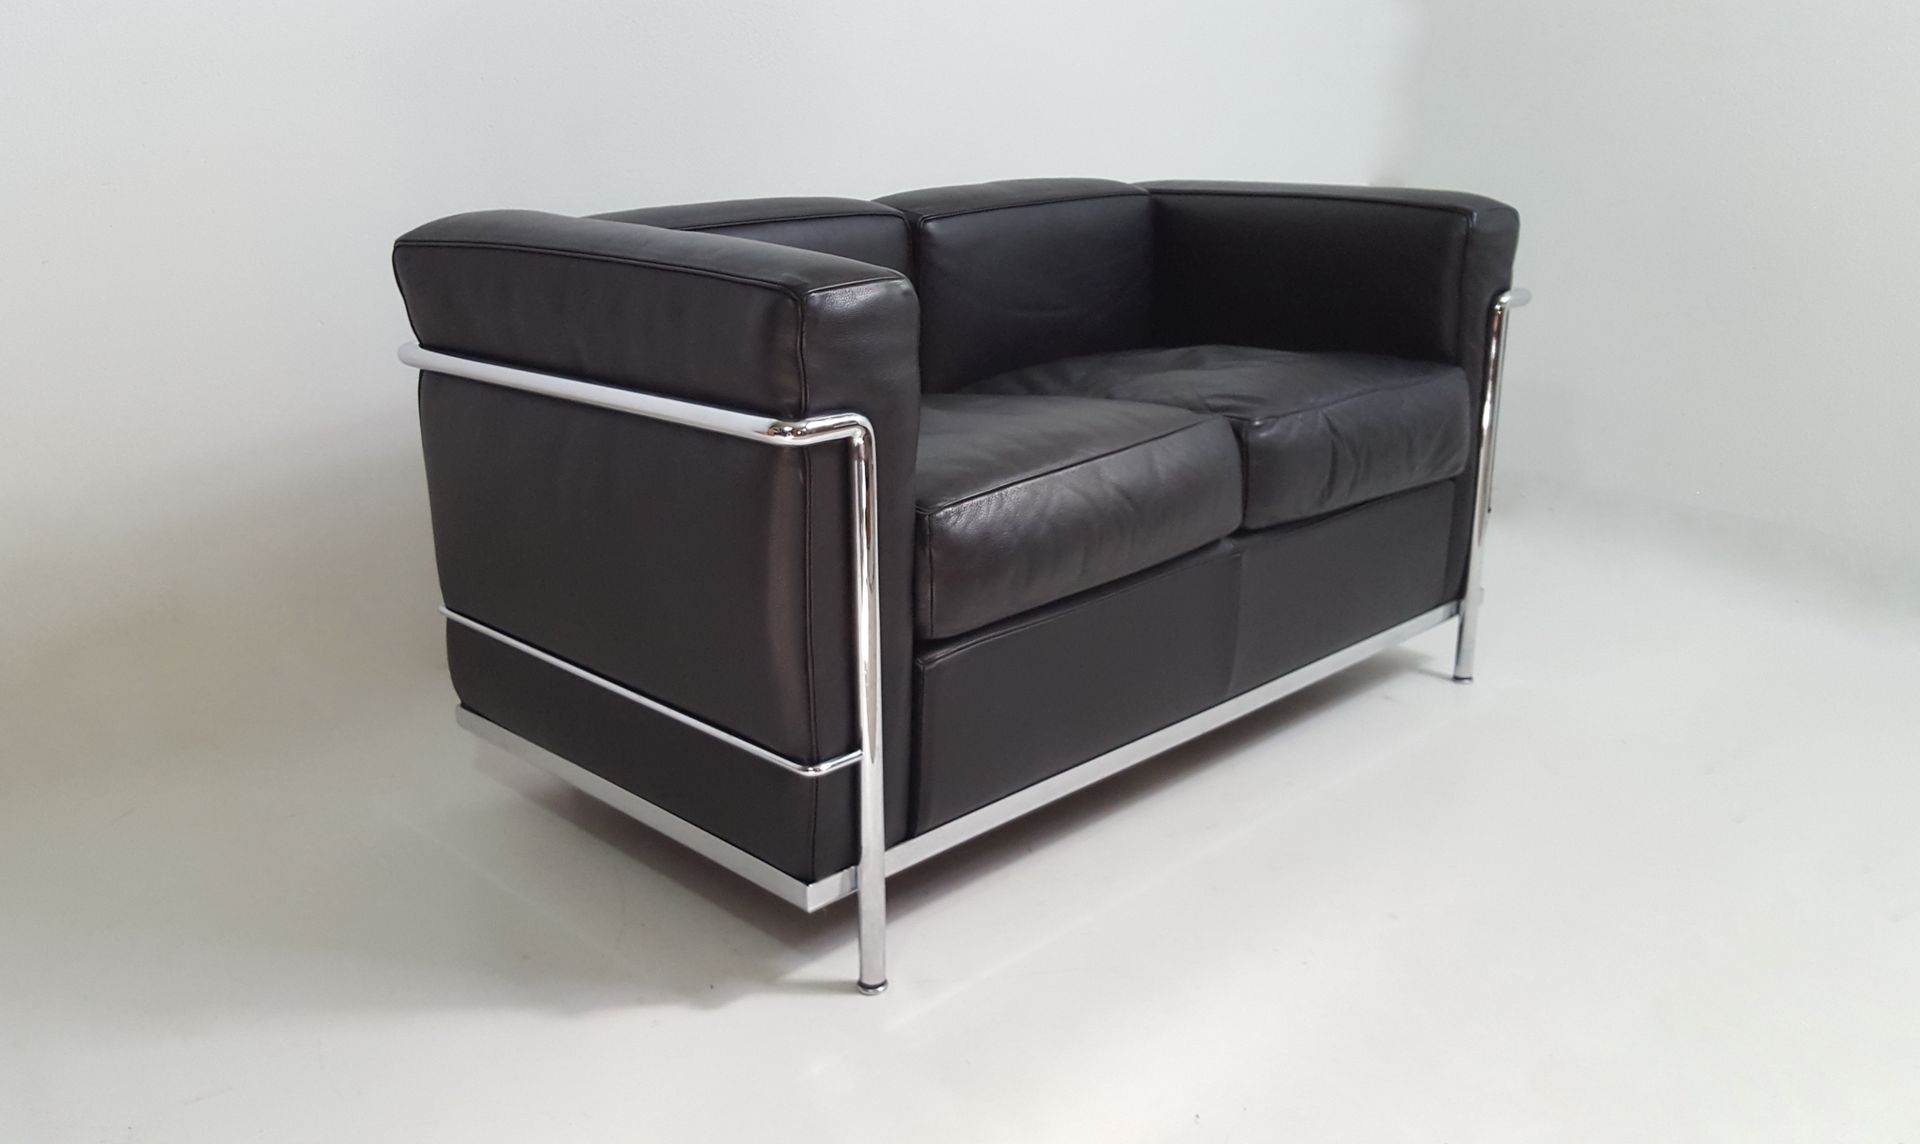 Vintage lc2 black leather sofa by le corbusier for cassina - Canape lc2 le corbusier ...